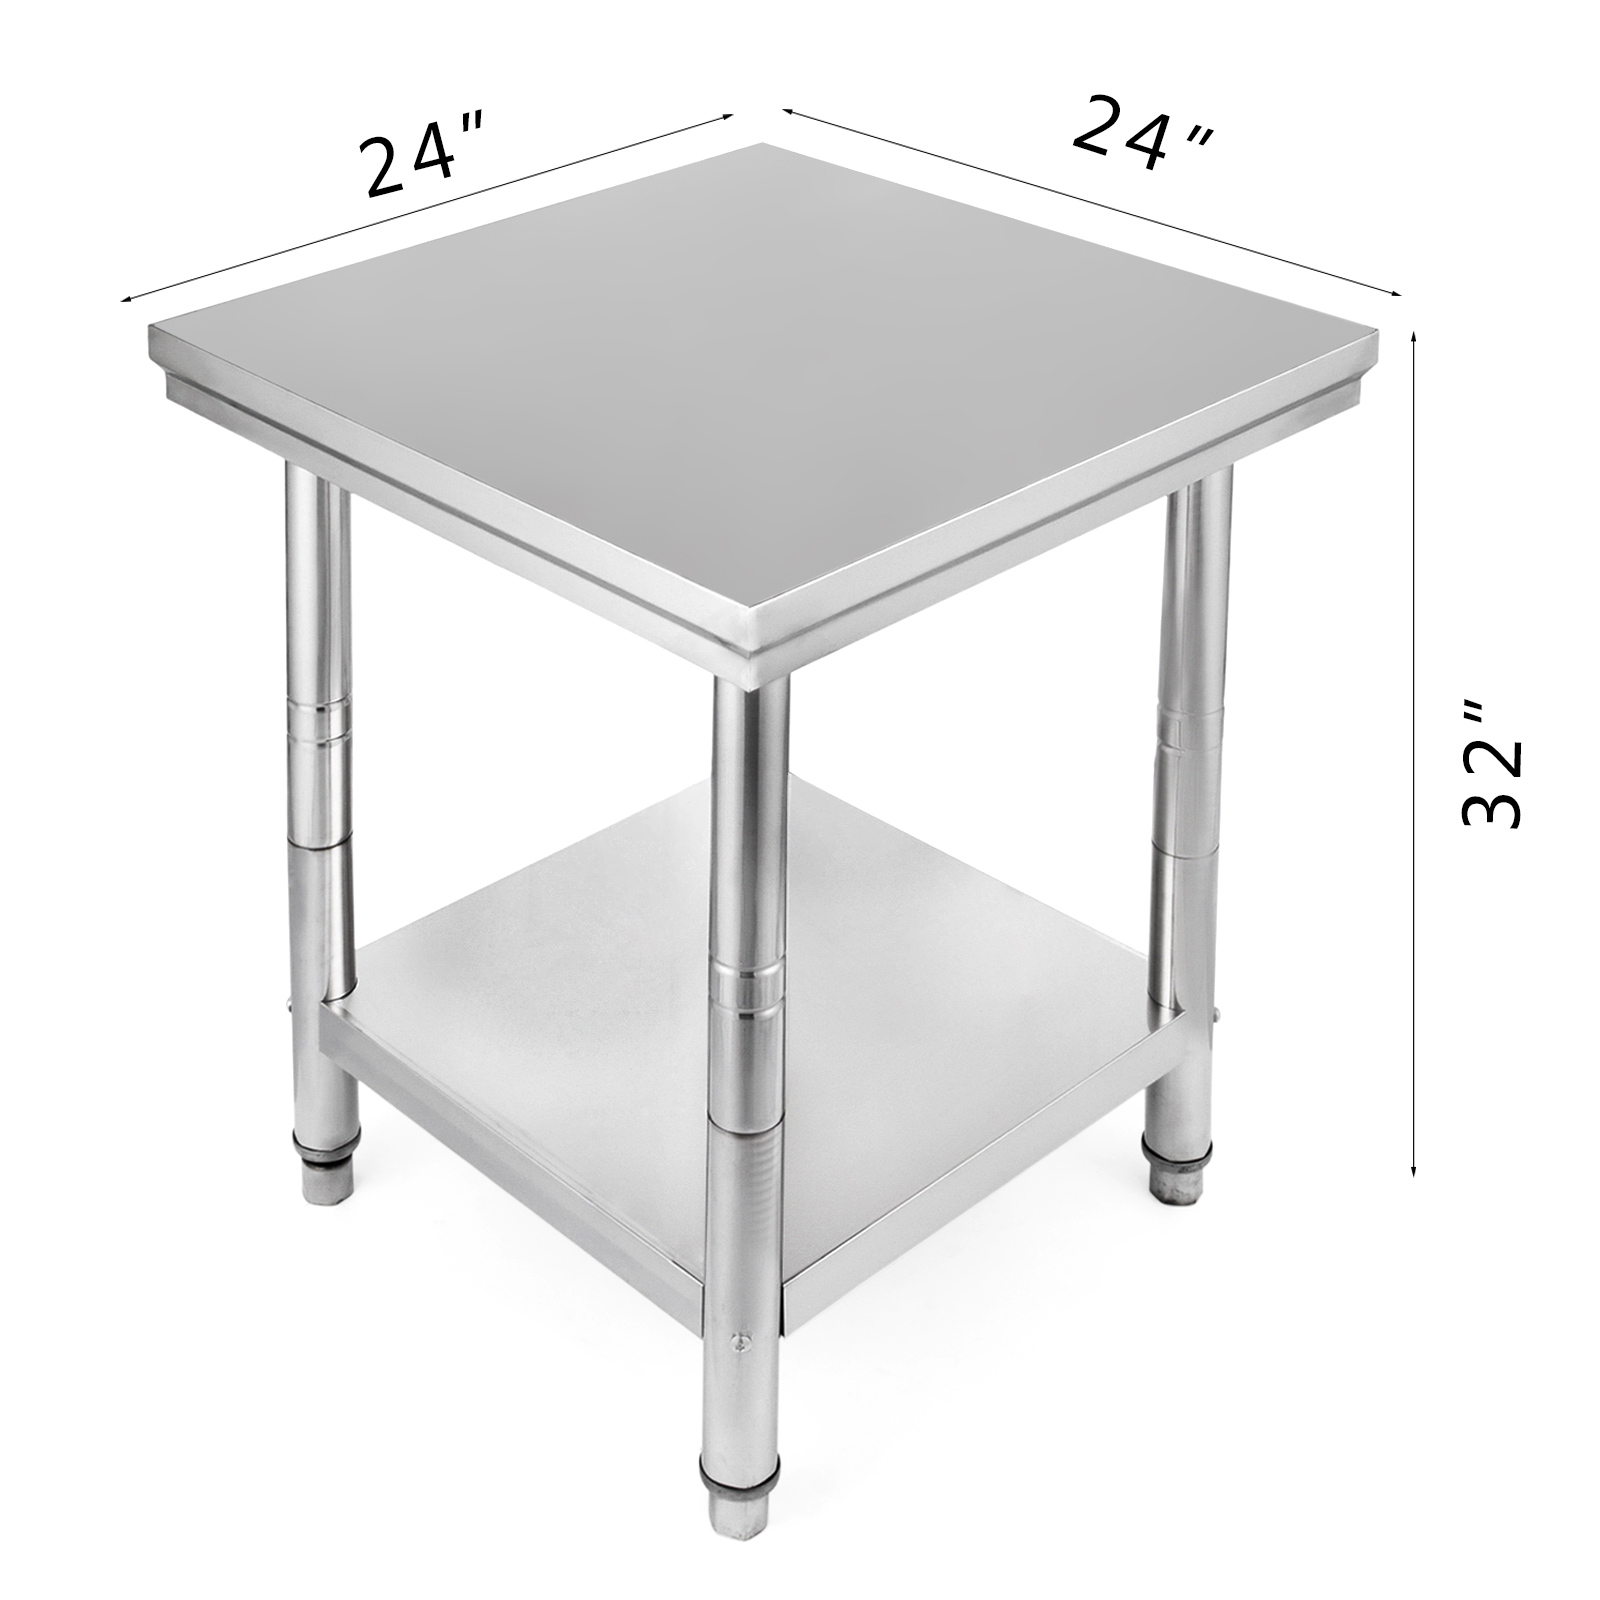 table de travail neuve plan de travail professionnel avec etagere inox 60x60 ebay. Black Bedroom Furniture Sets. Home Design Ideas